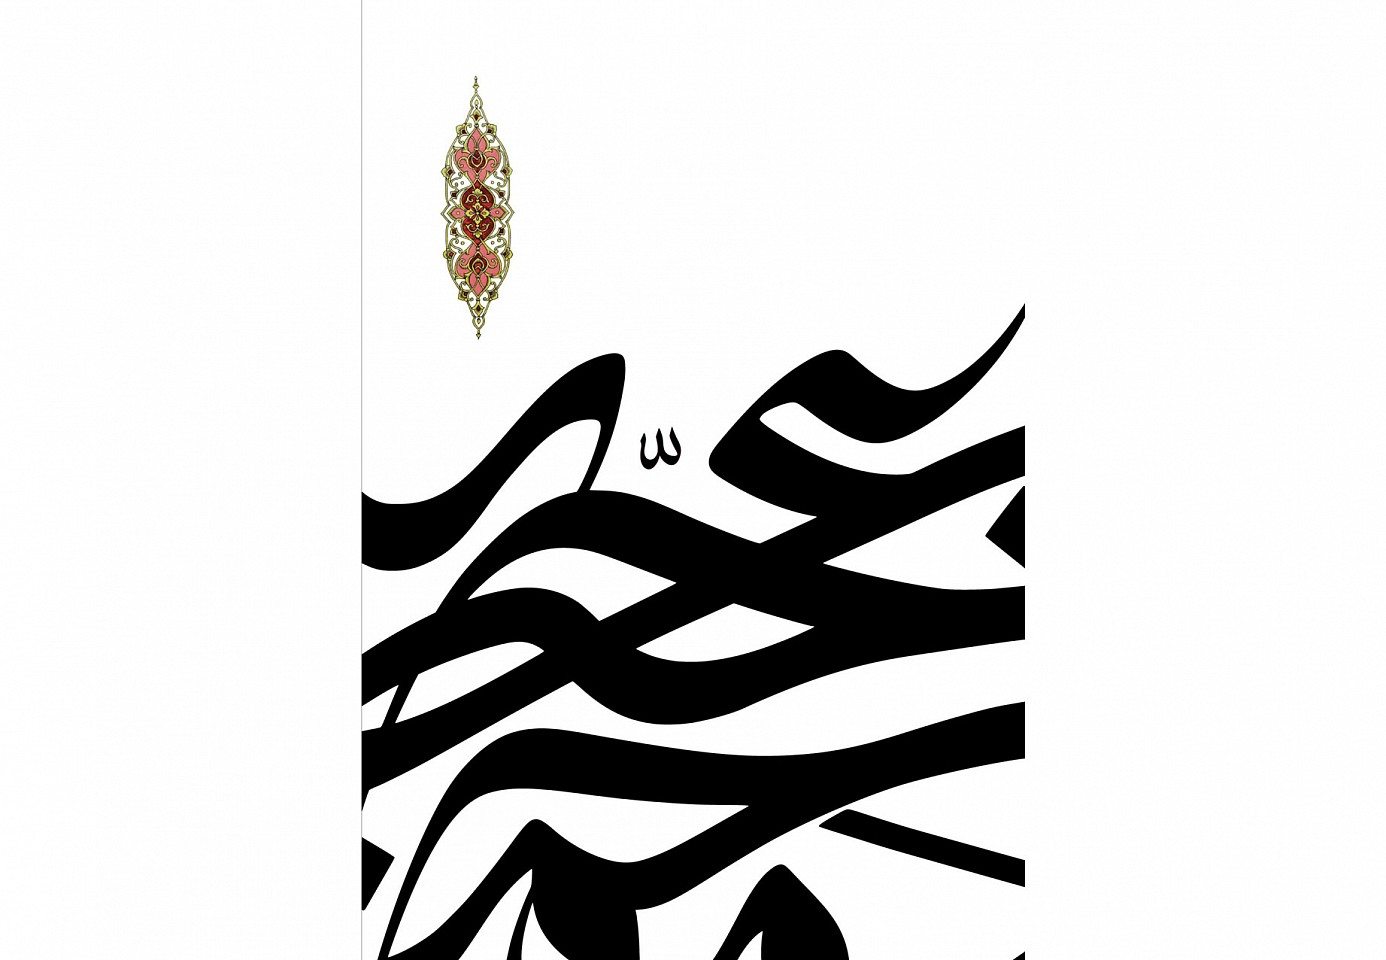 "<p><span class=""viewer-caption-artist"">Abdul Aziz Al Rashidi</span></p> <p><span class=""viewer-caption-title""><i>Magnified 01 From the Formation Series</i></span></p> <p><span class=""viewer-caption-media"">Ink on Paper</span></p> <p><span class=""viewer-caption-dimensions"">75.5 x 52 cm</span></p> <p><span class=""viewer-caption-inventory"">AAR0070</span></p> <p><span class=""viewer-caption-aux""></span></p>"